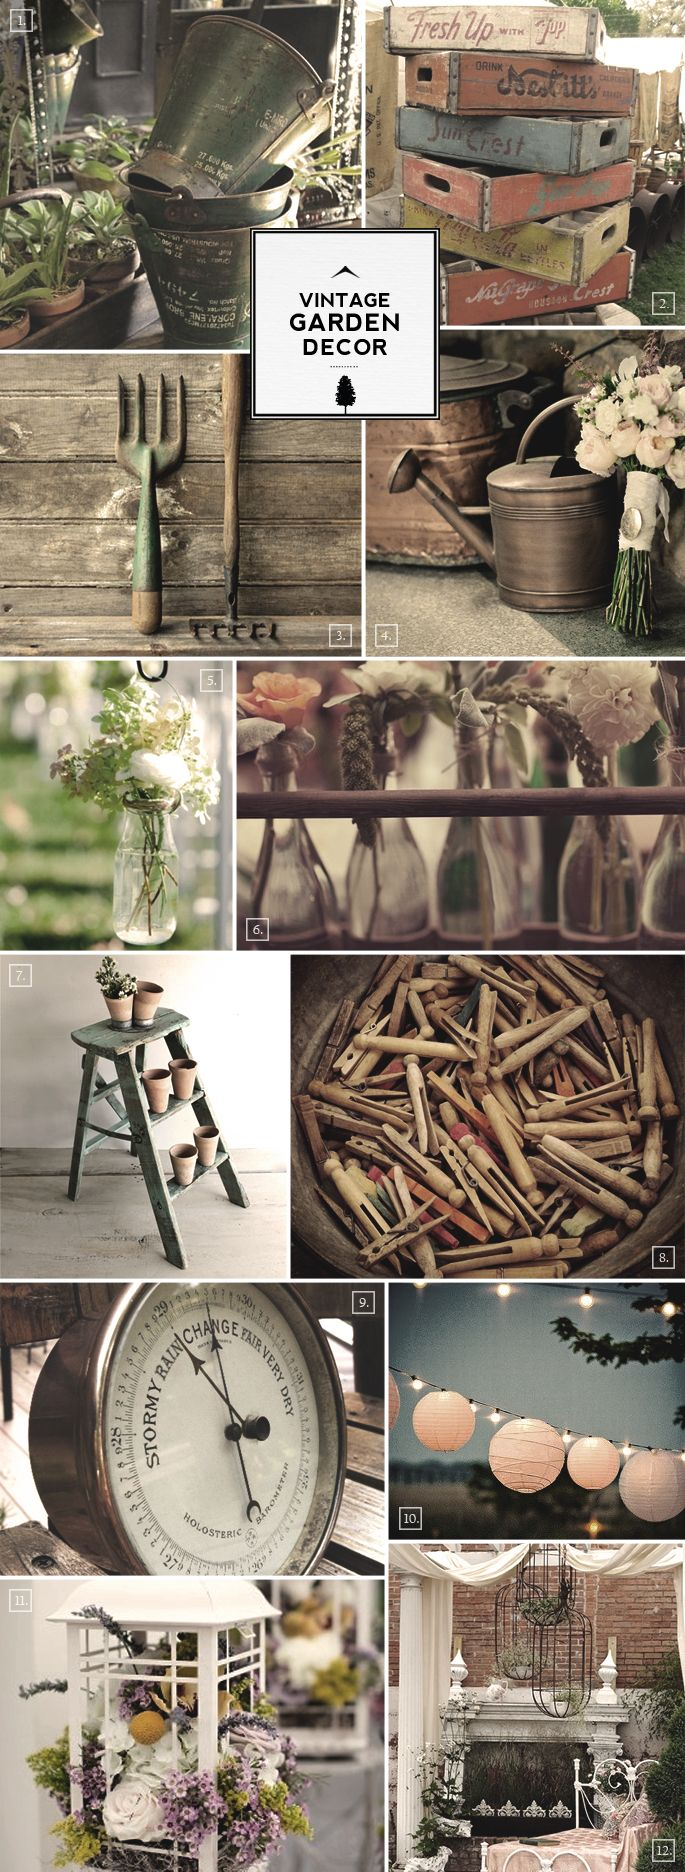 DIY Ideas for Vintage Farmhouse Garden Decor and Outdoor Accessories !